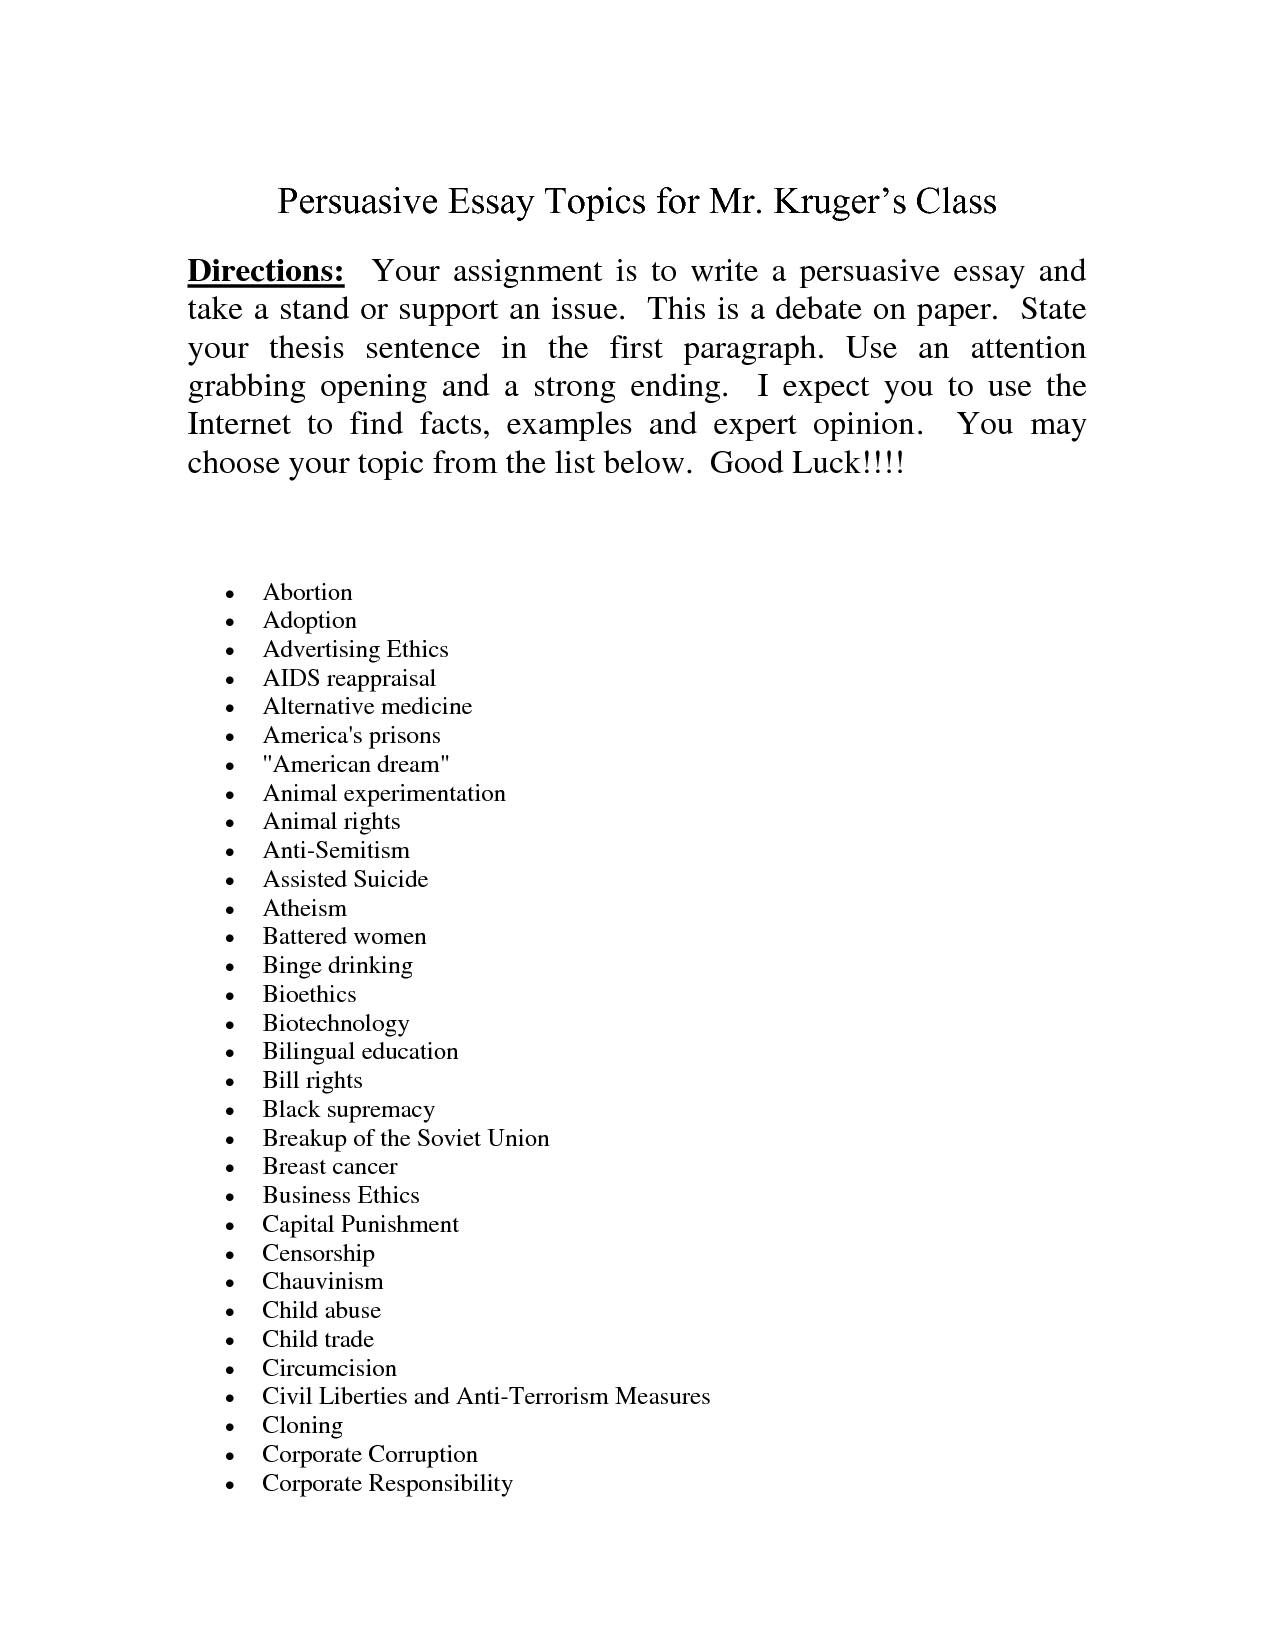 013 Argument Essay Student Samples Corporation Term Paper Writing List Of Argumentativepersuasive Topics Awesome Collection Strong Argumentative Best Topic Great College Good Research Gatsby Beautiful Persuasive 2017 Speech For Top 10 Full